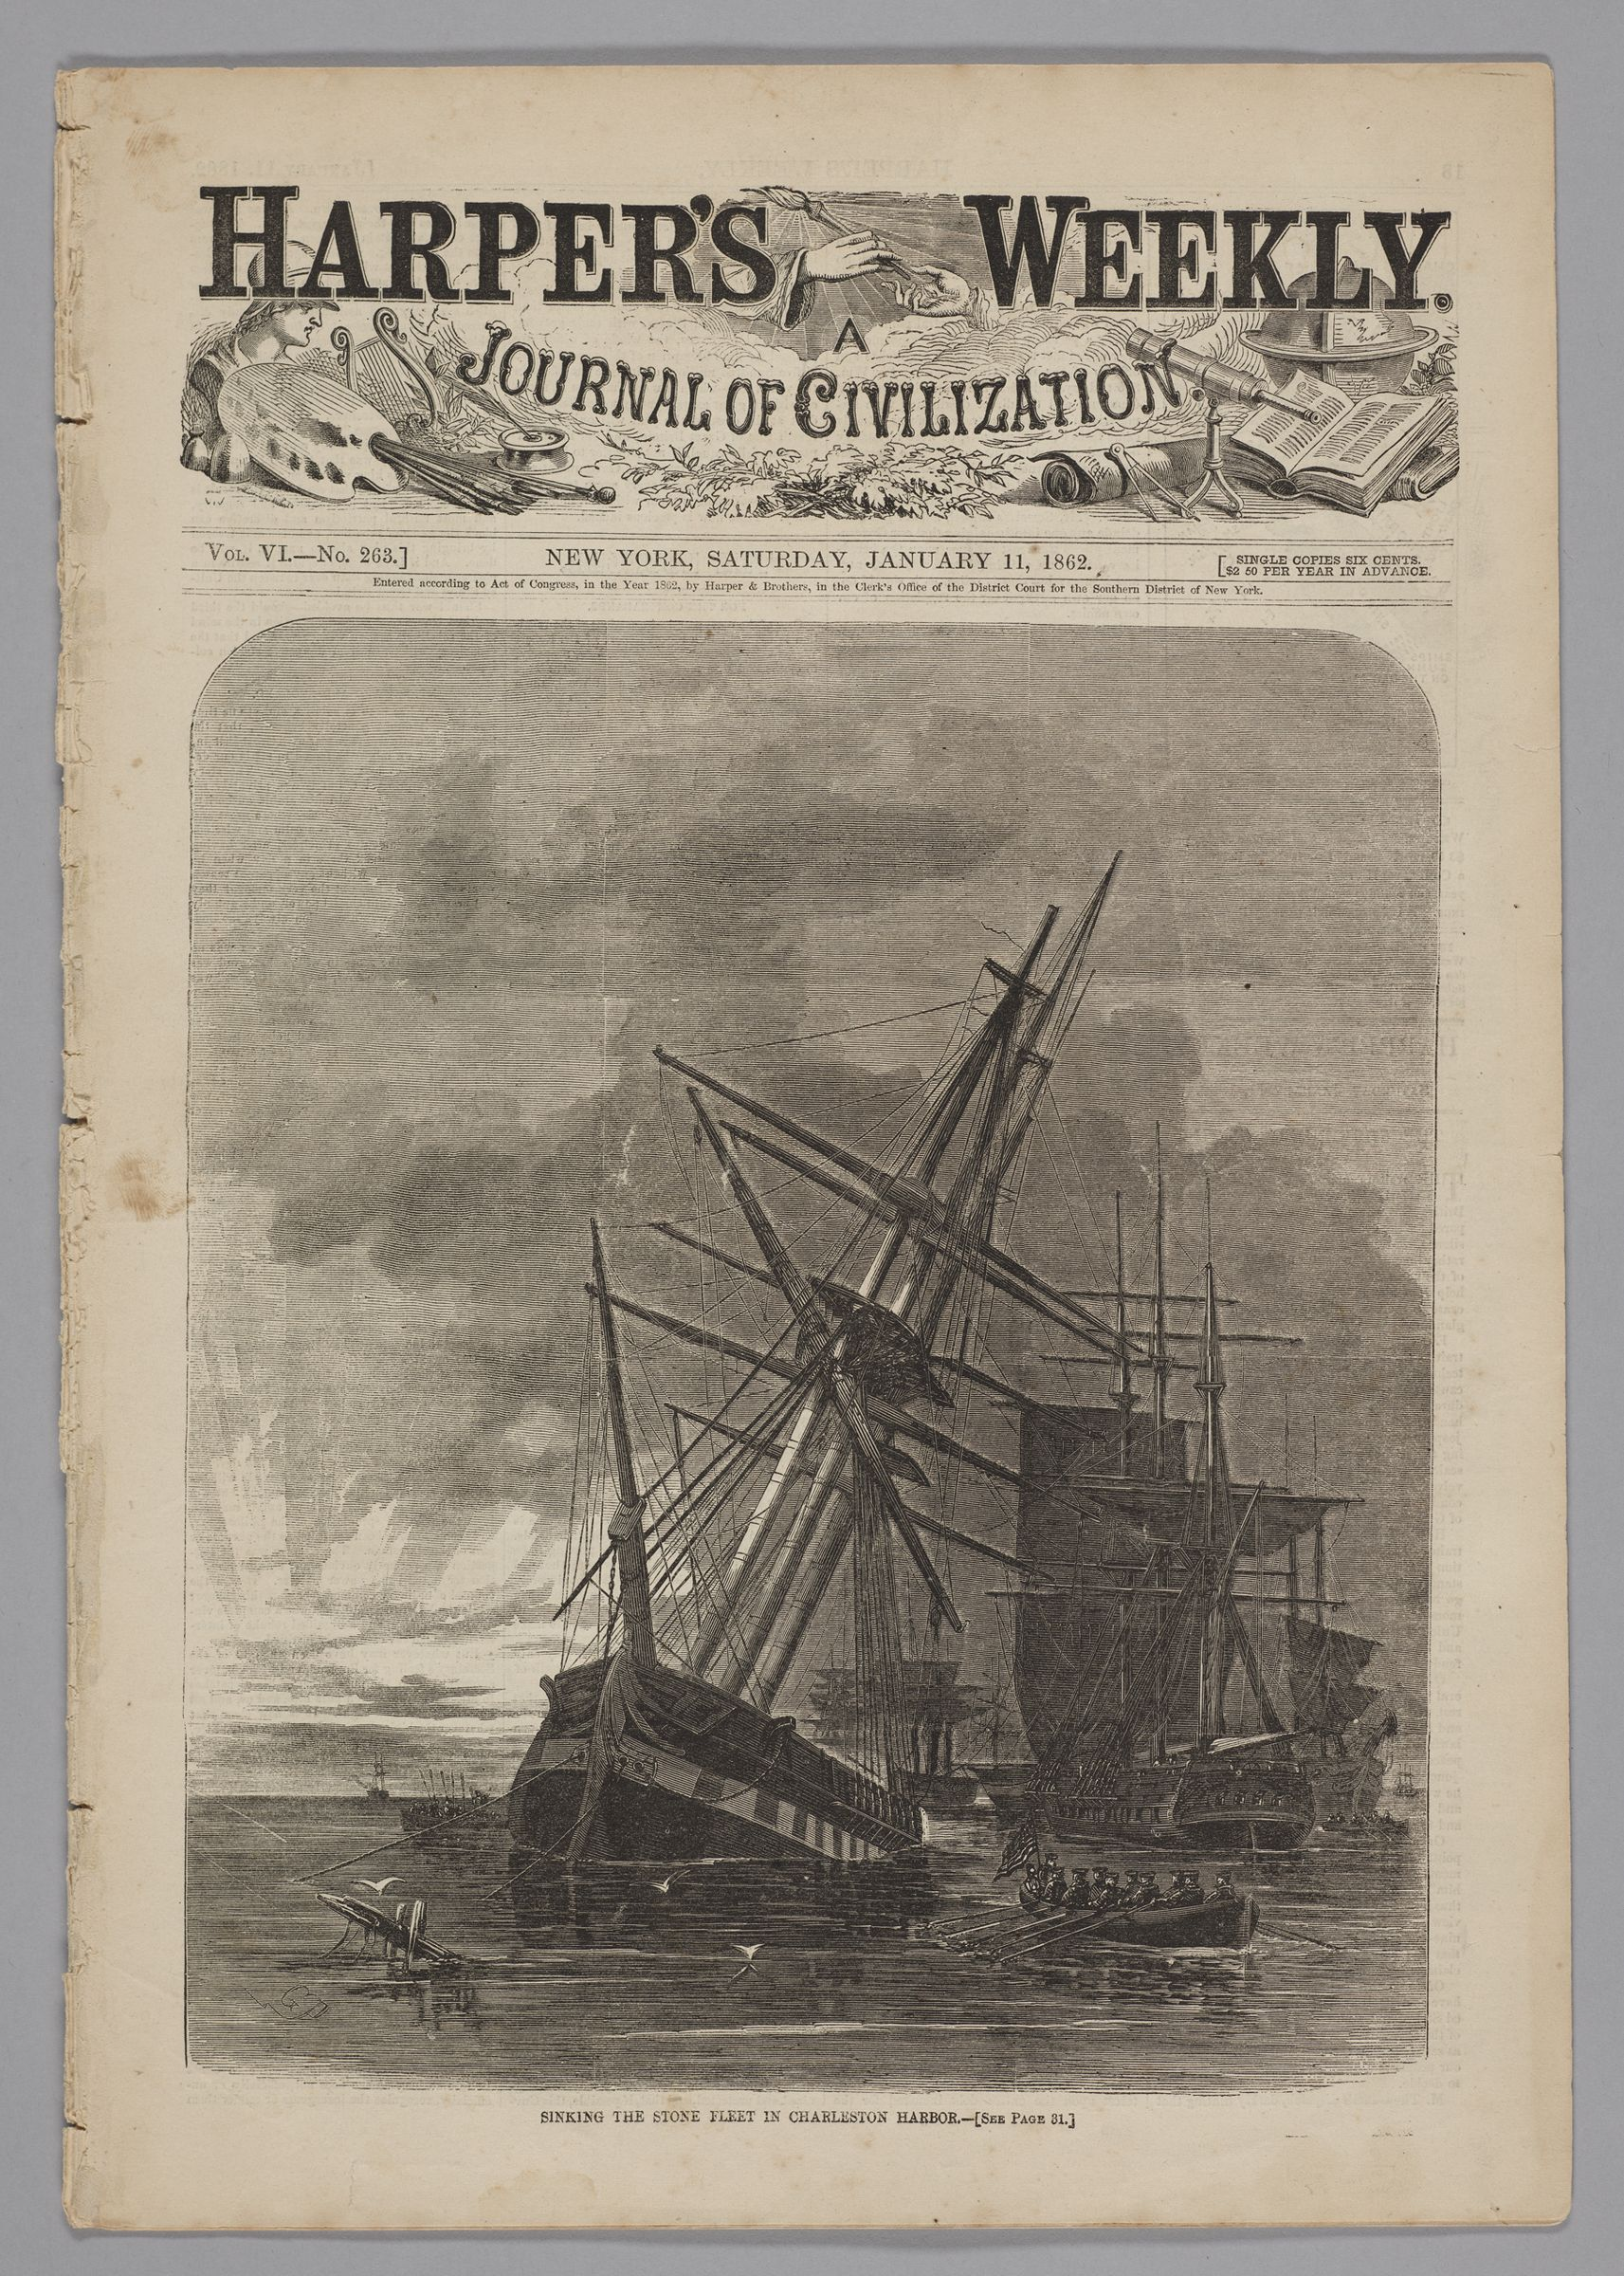 Harper's Weekly, Vol. Vi, No. 263